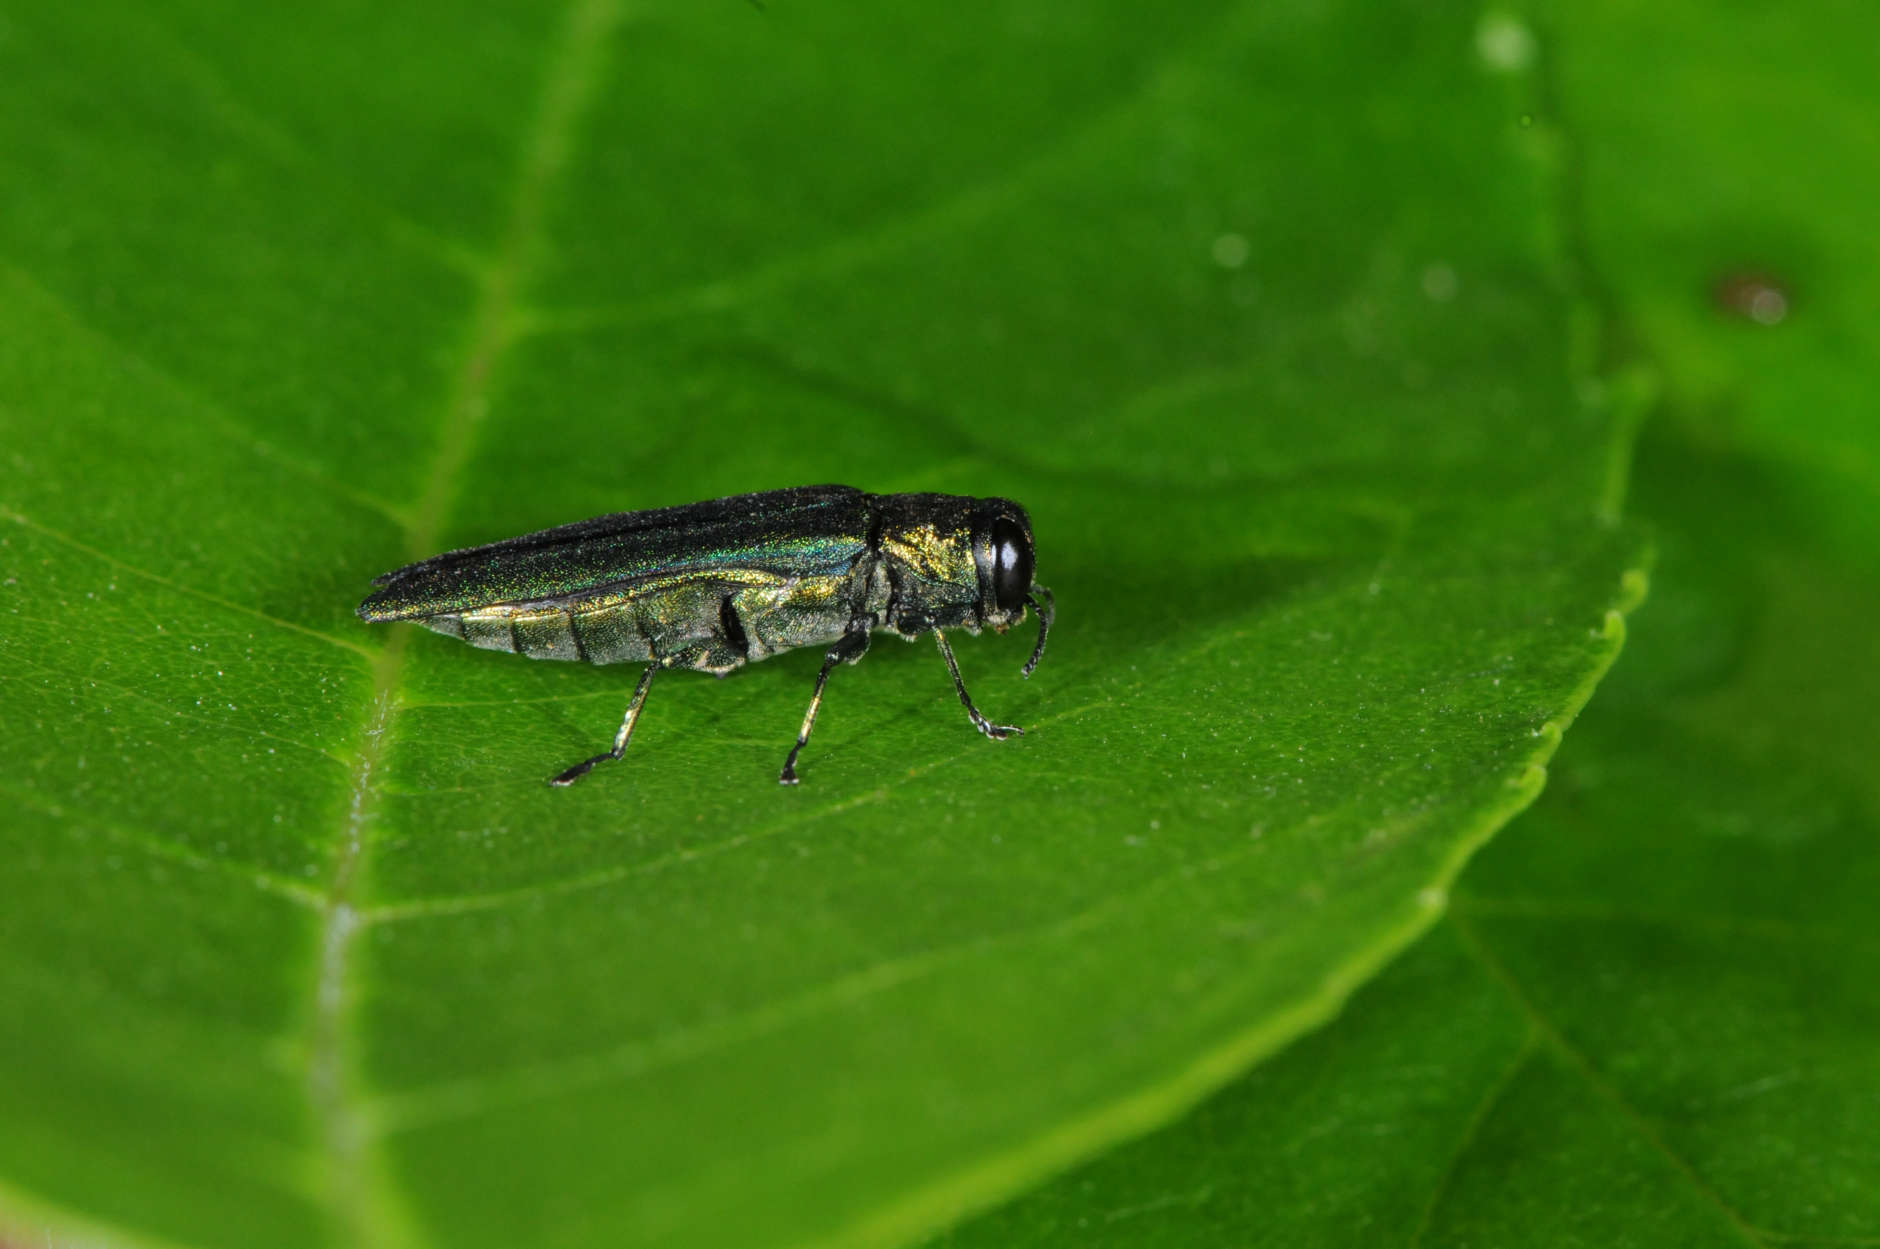 Protected by antifreeze-like compounds in its blood, the emerald ash borer will not be killed unless temperatures drop well below zero. (Photo courtesy Mike Raupp)